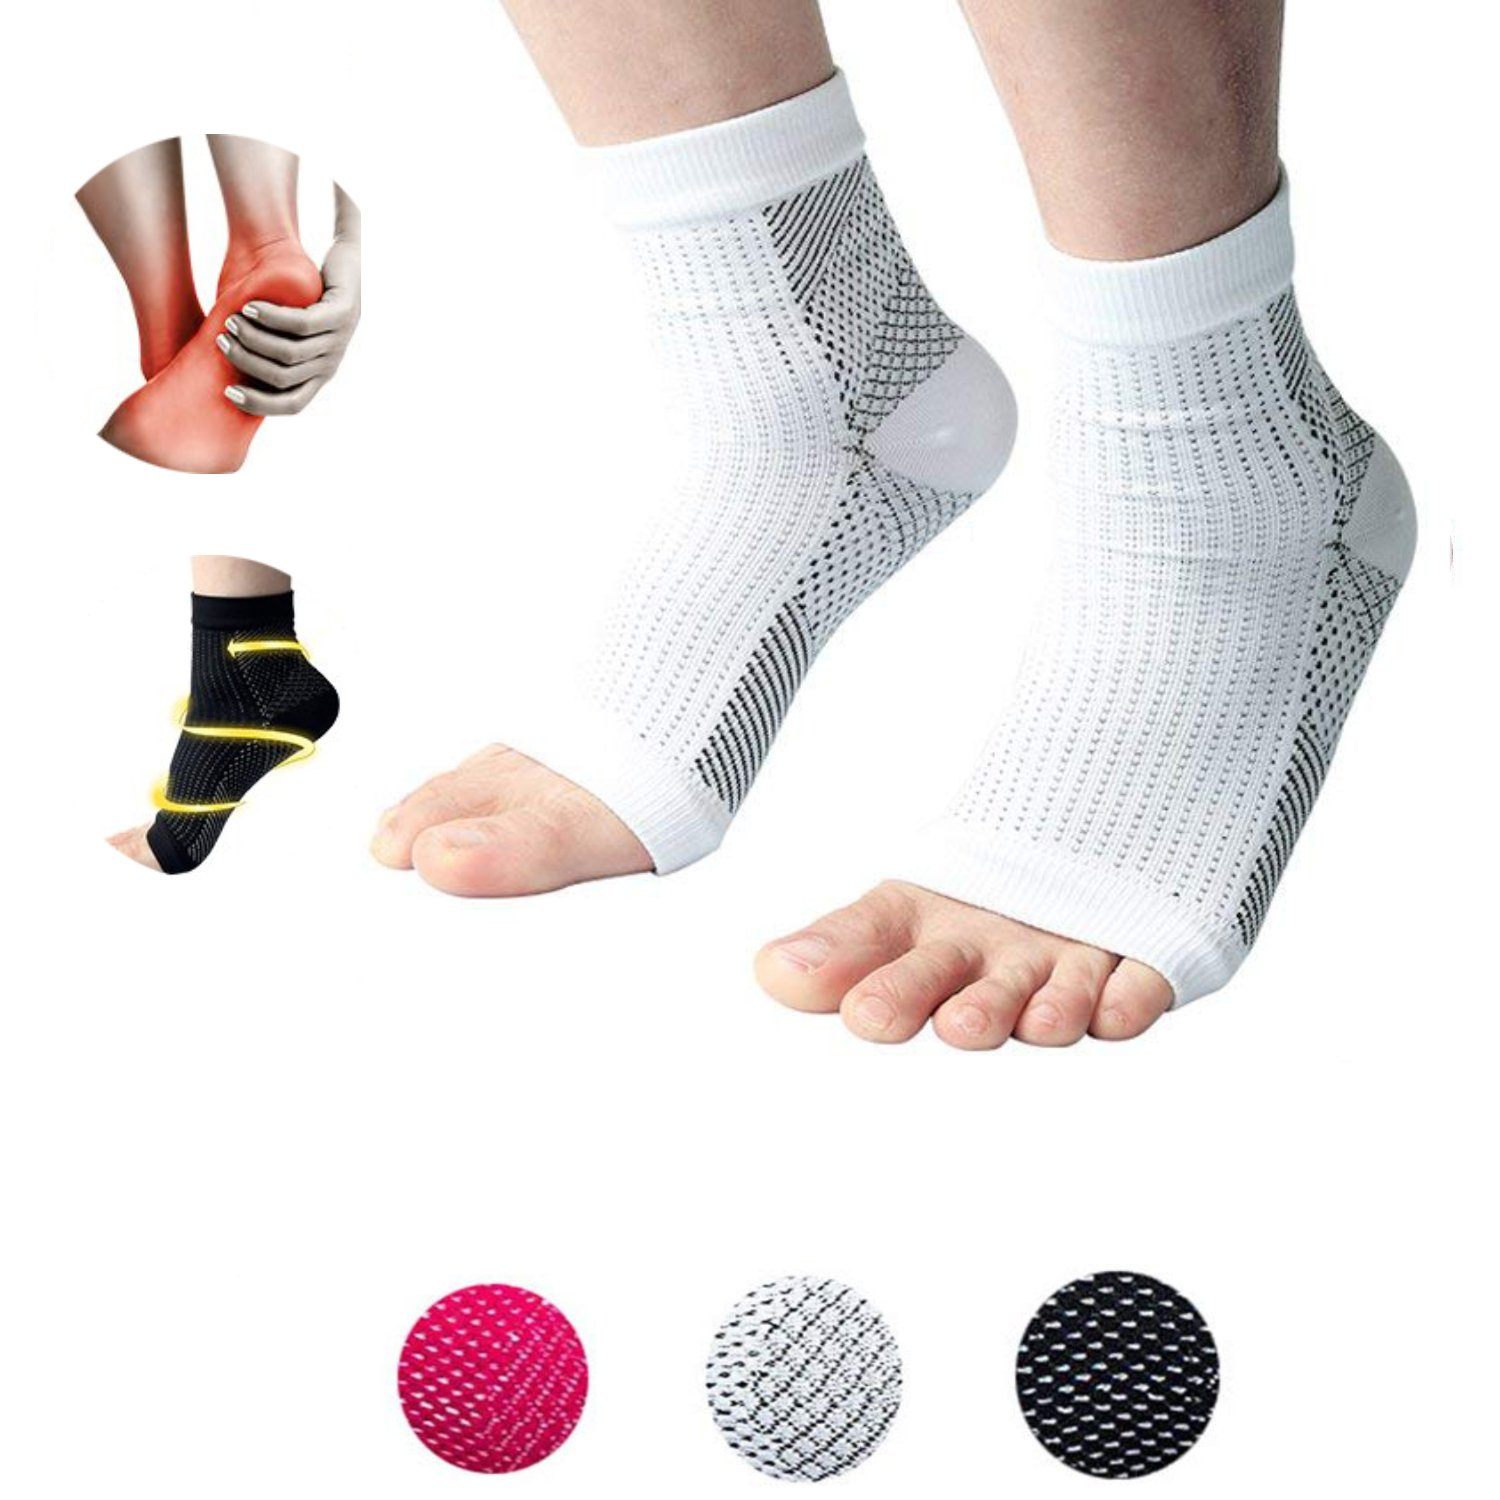 Plantar Fasciitis Socks, 2 Pairs of Male Female Compression Foot Covers, Ankle Support or Plantar Support, Quickly Relieve Pain, Relieve Swelling, and Heel All-Weather Treatment. (White, L/XL)